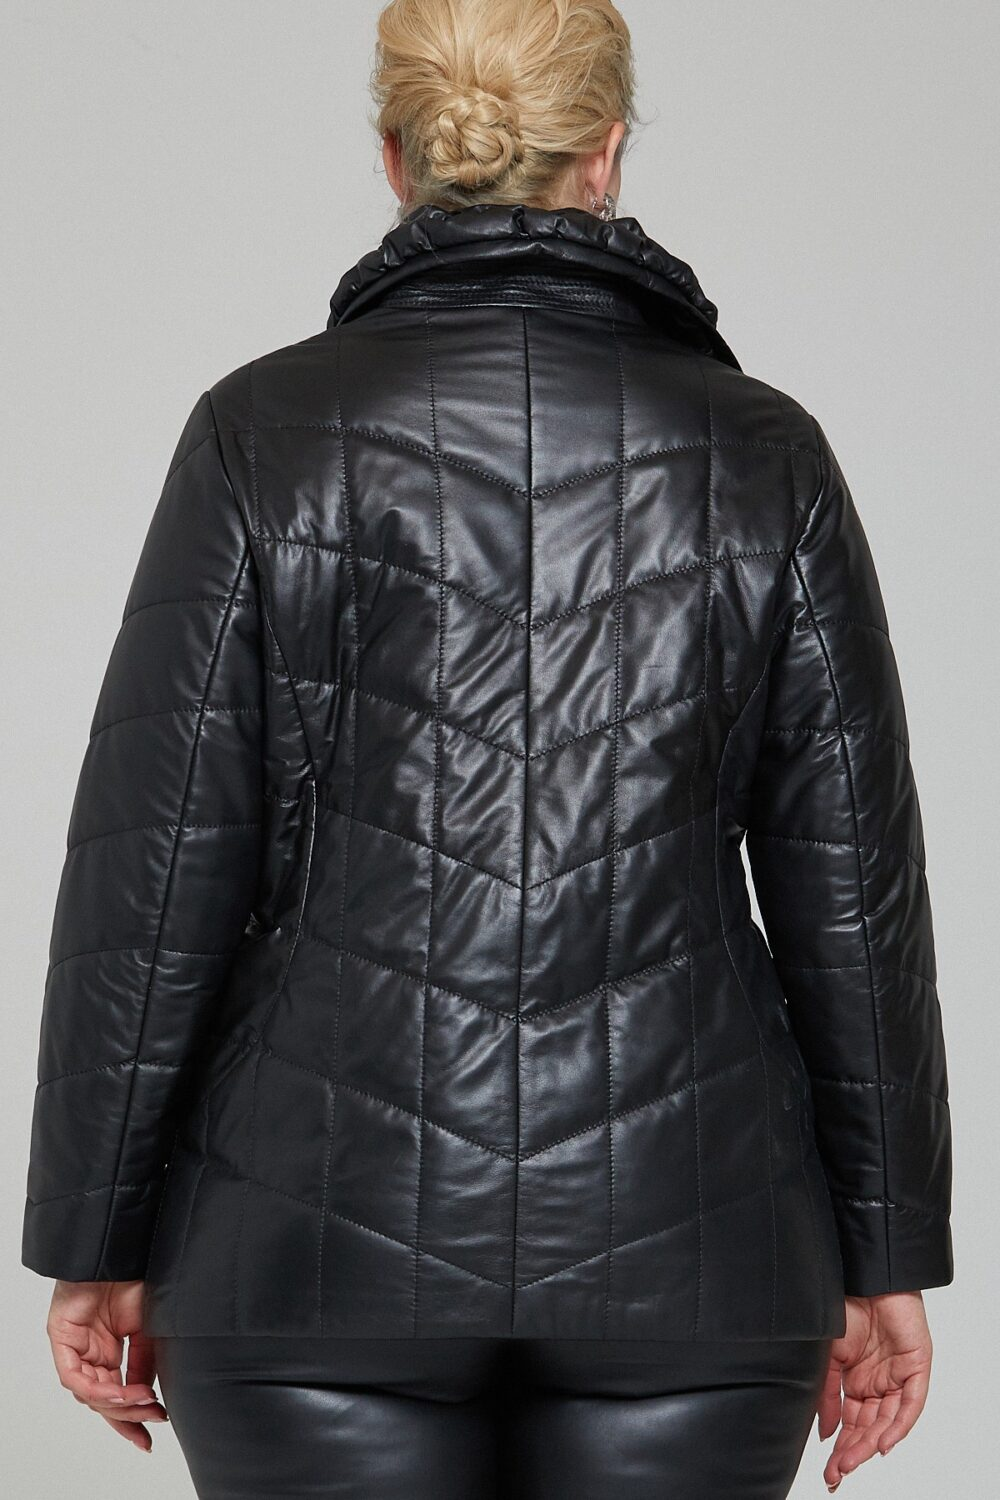 Where To Buy Black Leather Jacket